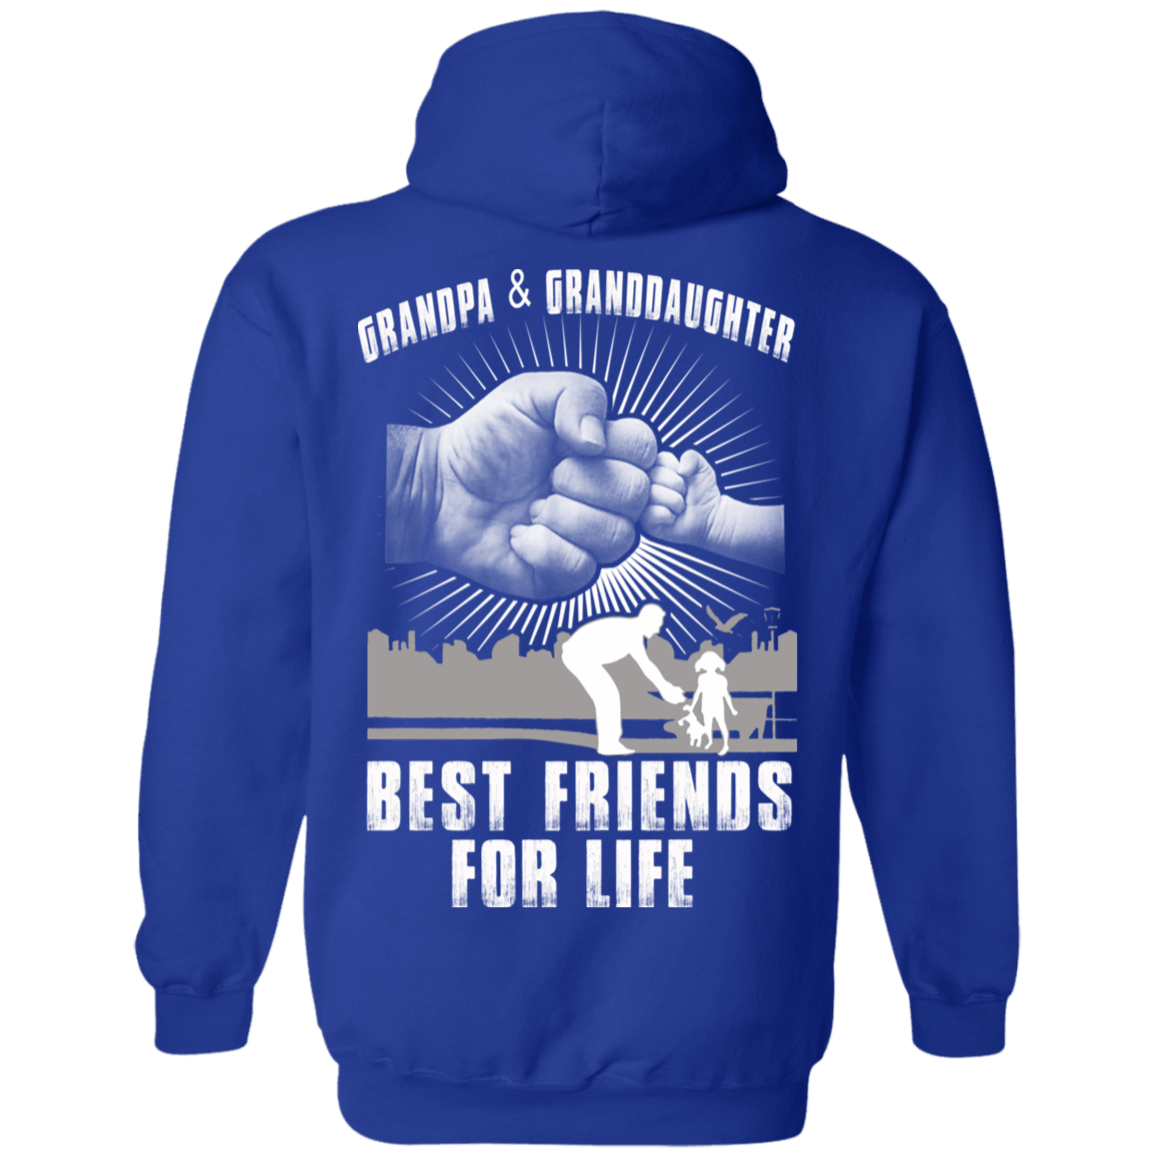 Grandpa And Granddaughter Best Friends For Life 541-4765-71996241-23175 - Tee Ript